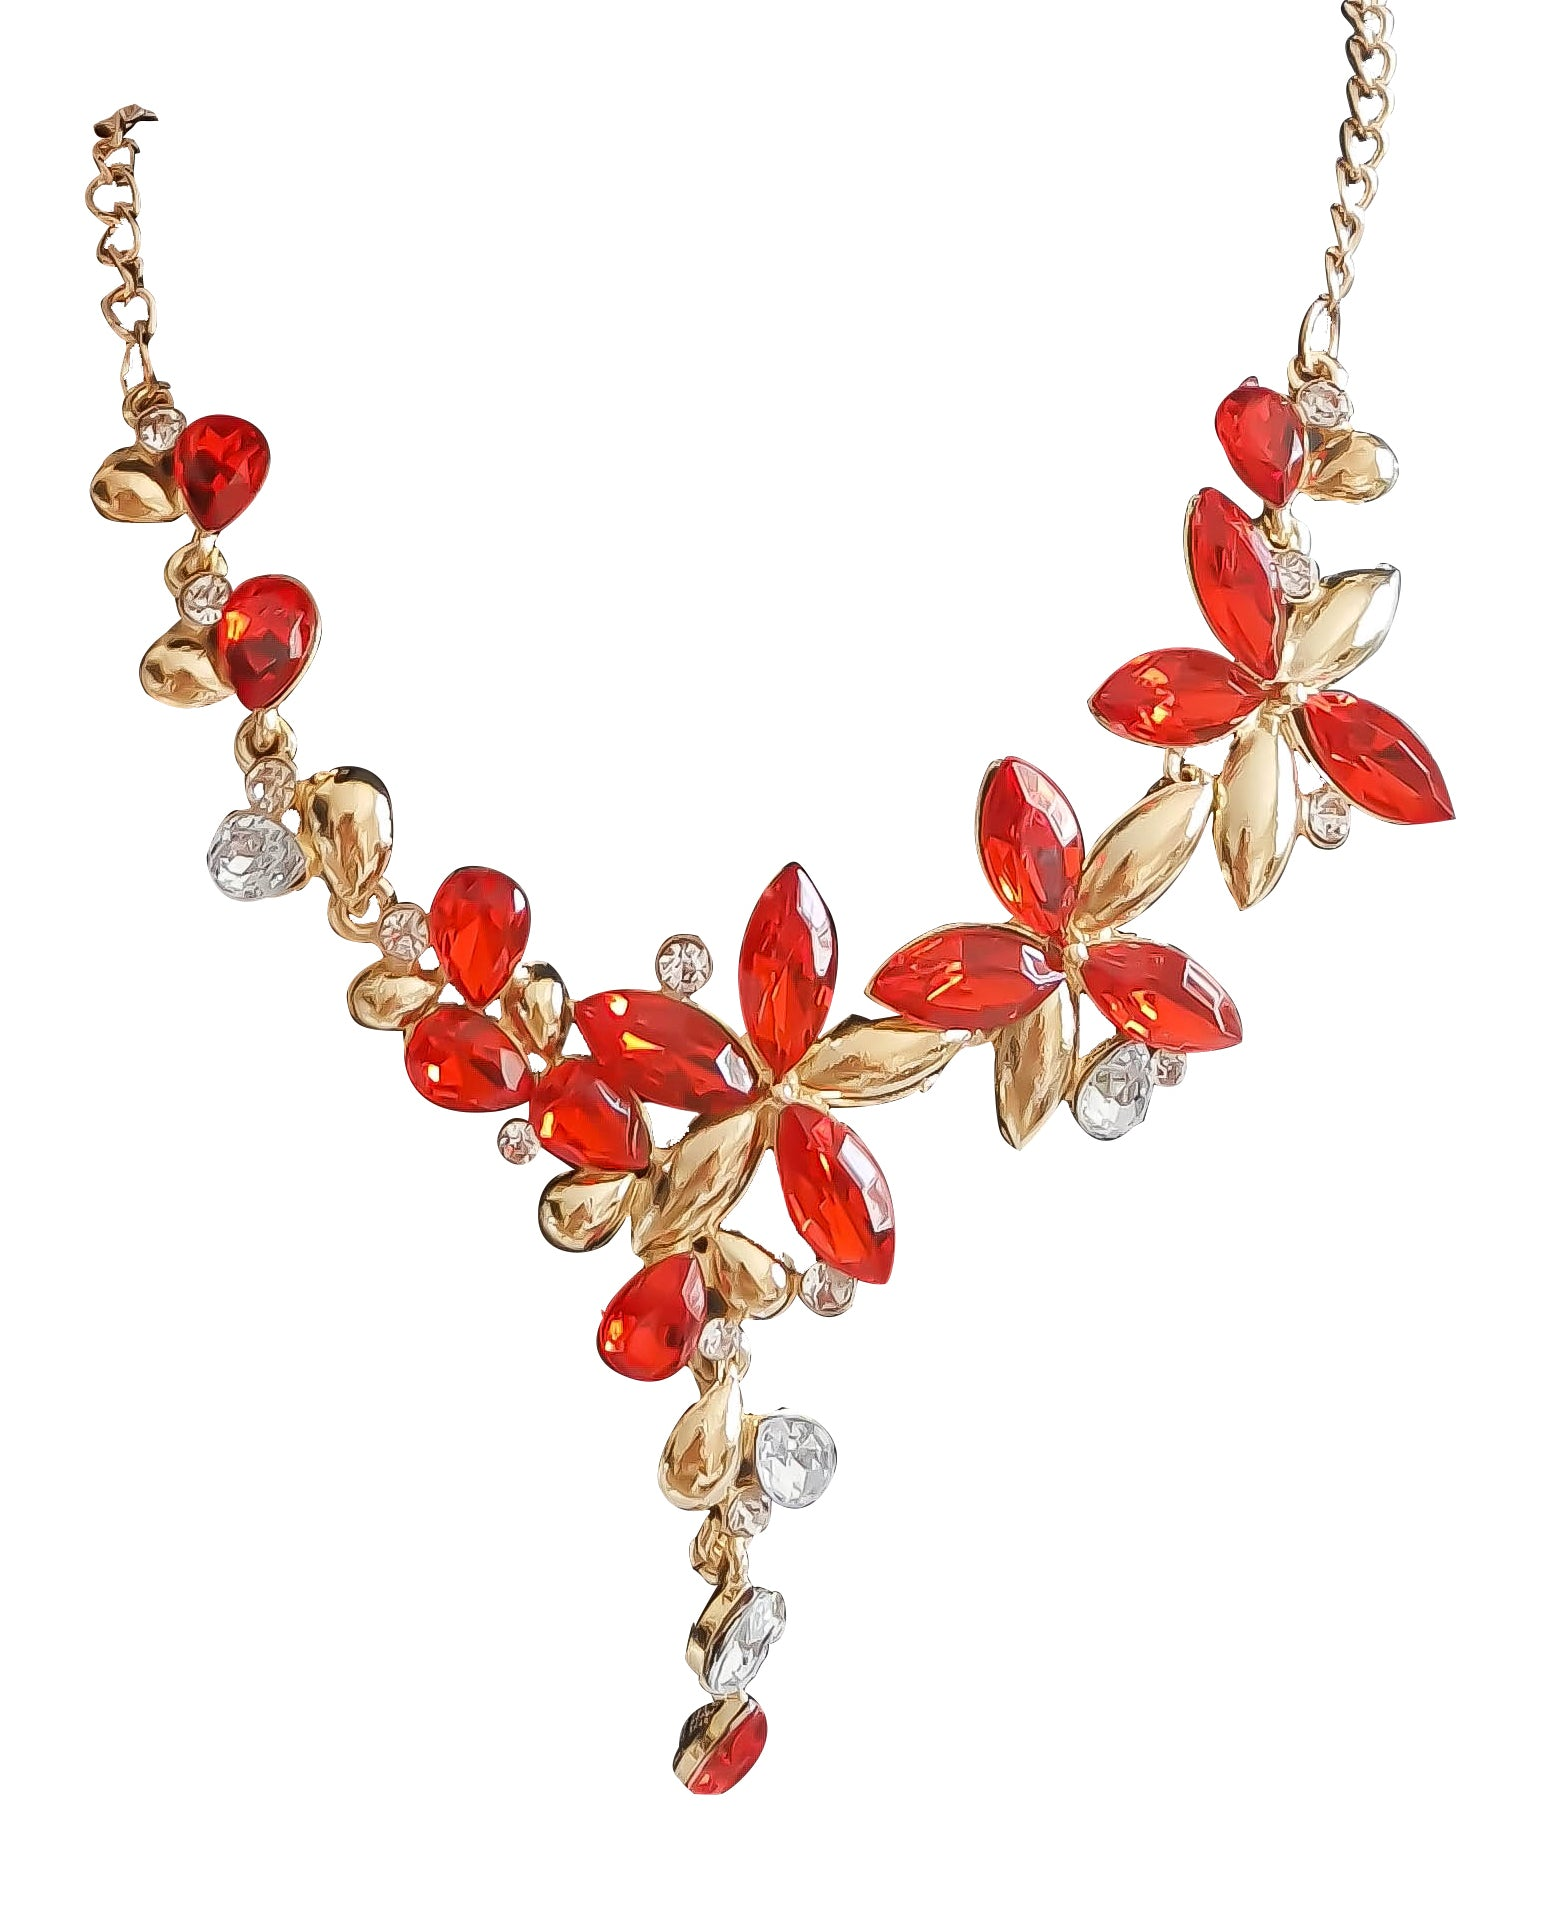 Flower Necklace and Earrings Set - Vlure